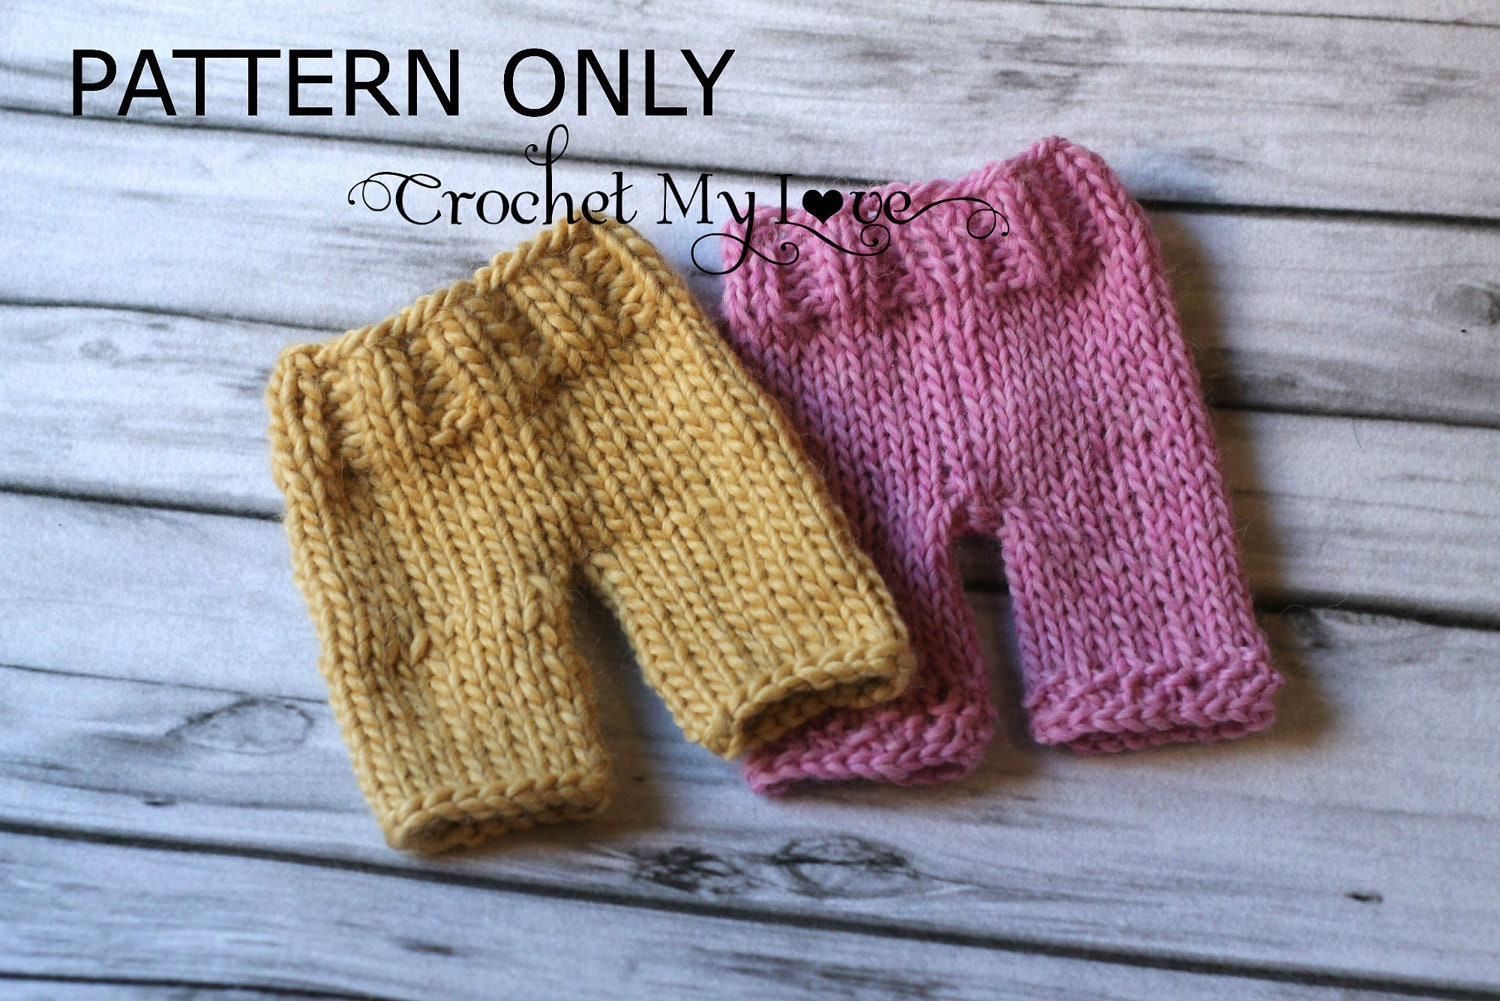 Knitting pants pattern baby pants pattern by CrochetMyLove